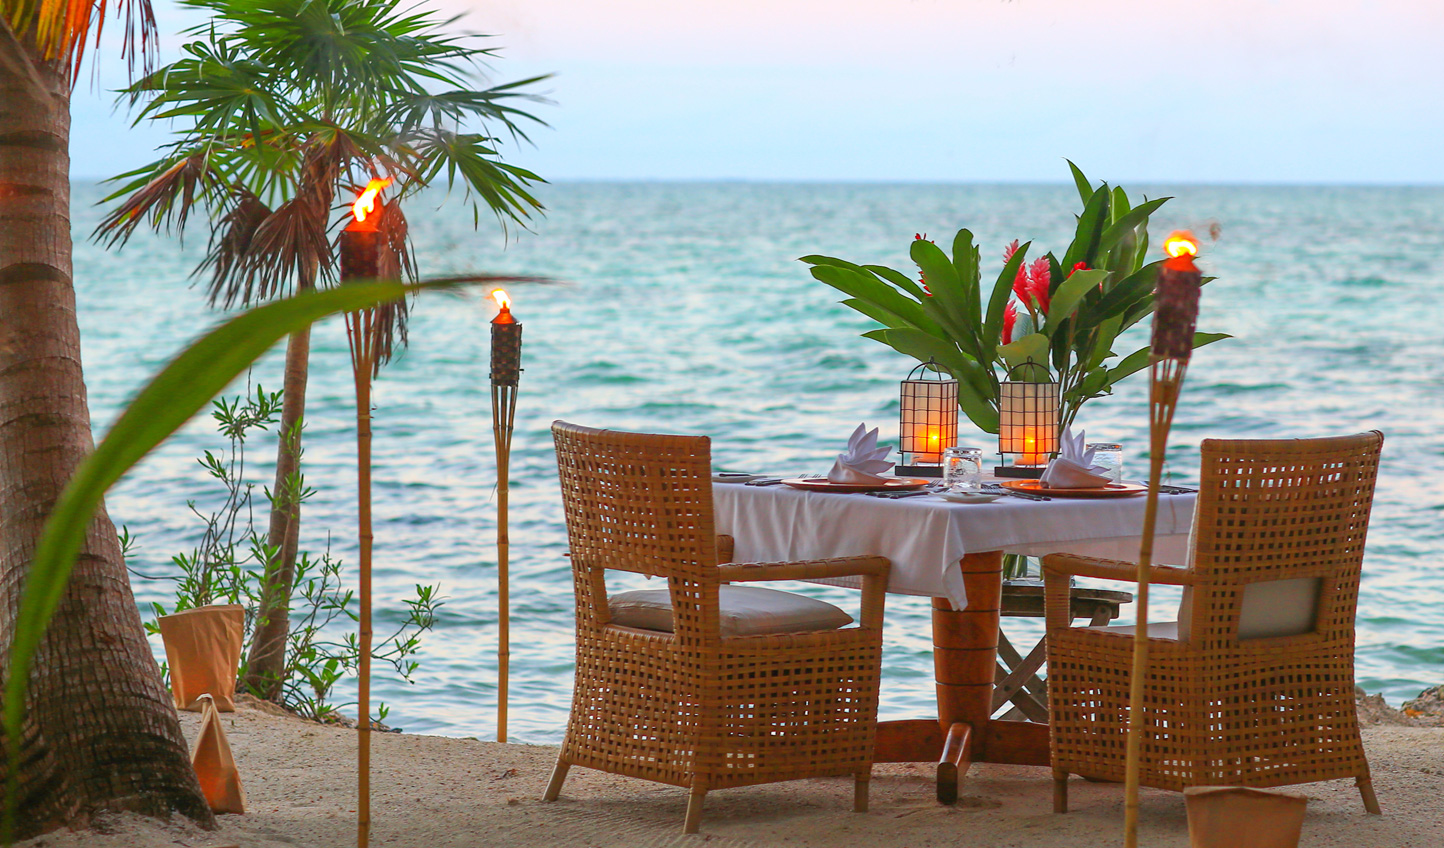 Dine with your toes in the sand